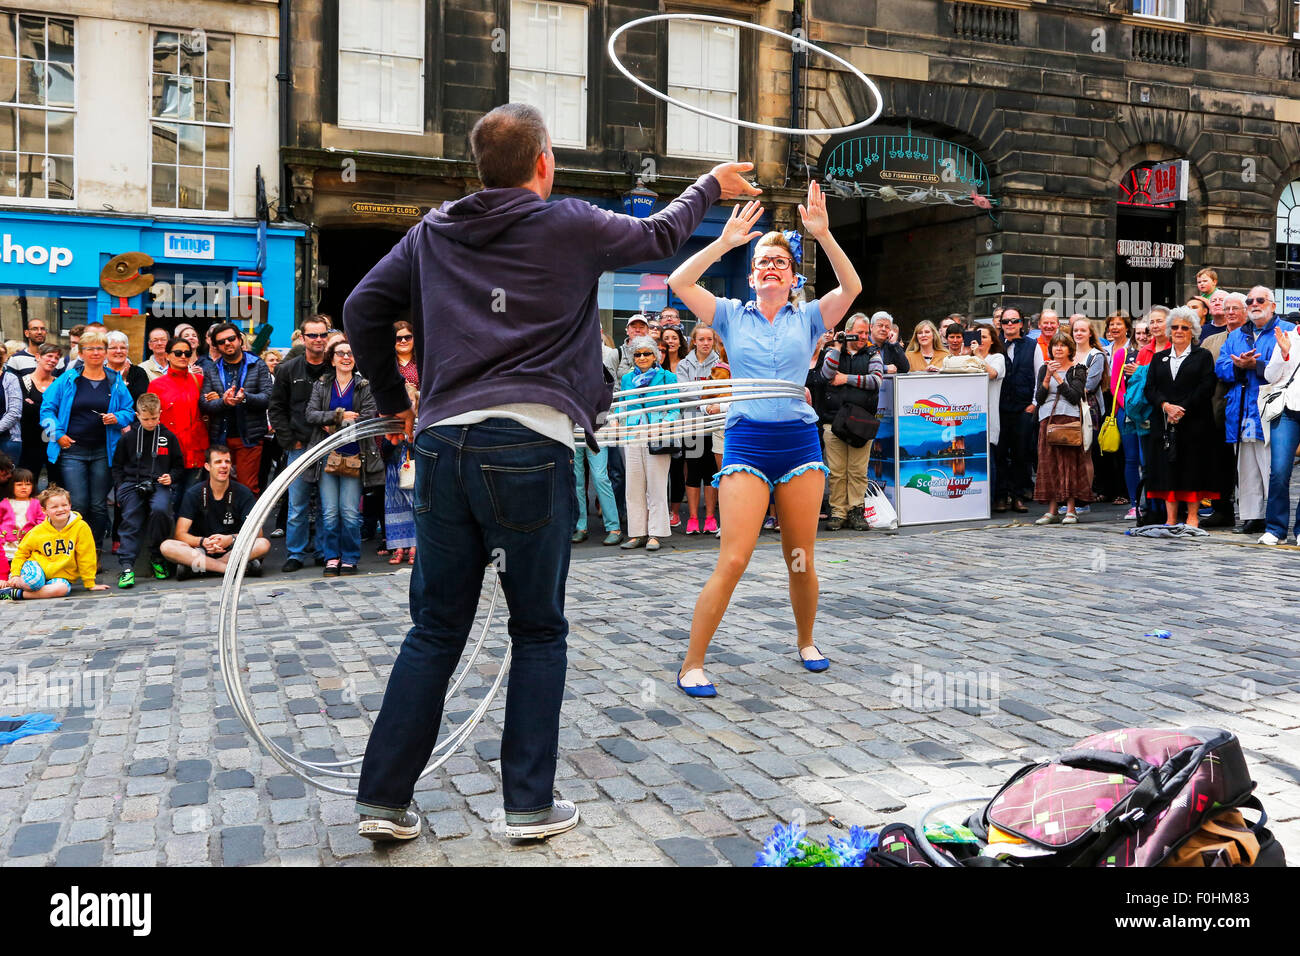 Acrobat called 'Maples' performing with hula hoops in The Royal Miler, Edinburgh at the Fringe Festival, - Stock Image